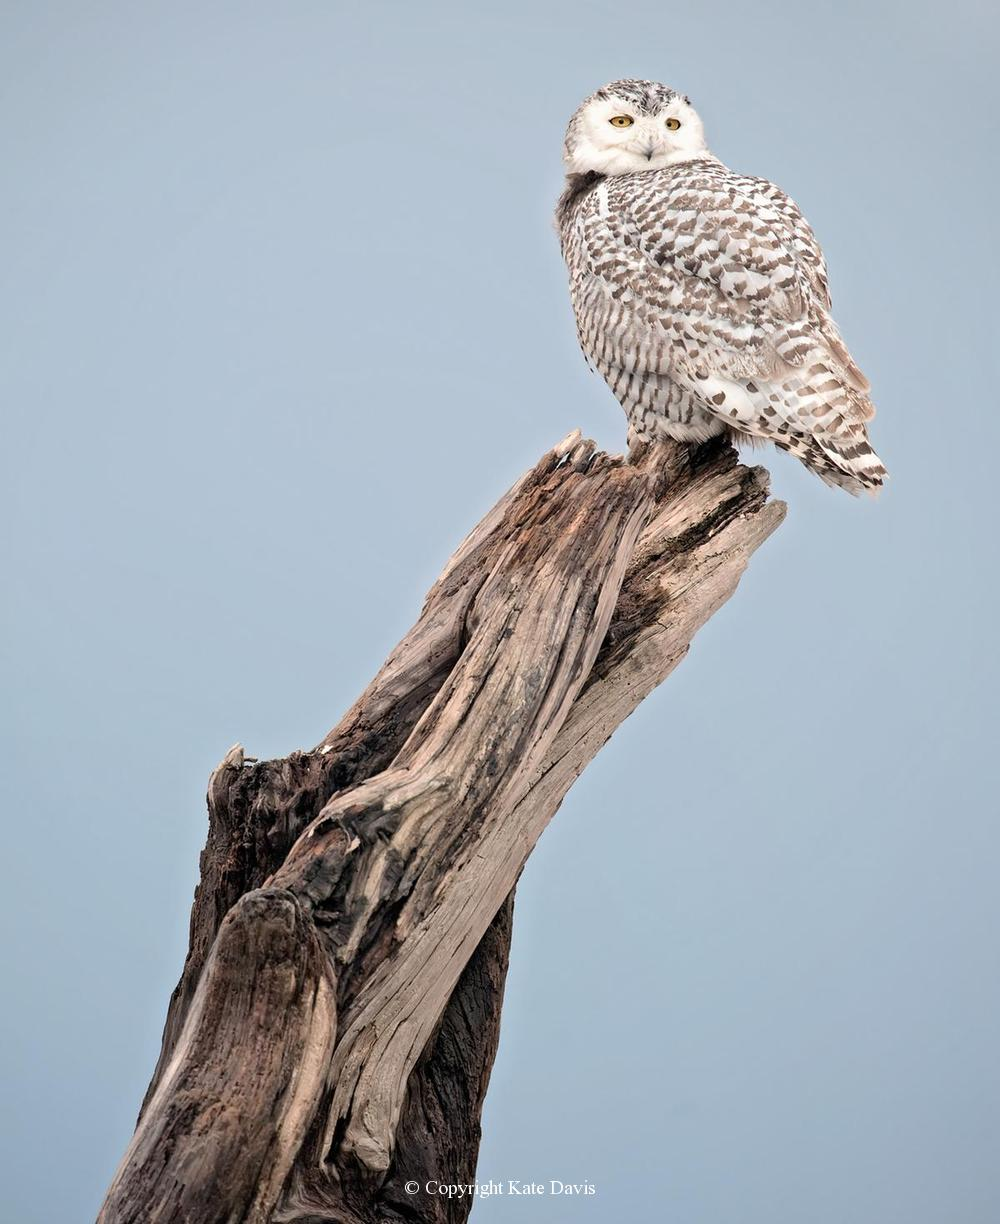 Kate Davis Owl Photographs  - Coastal Snowy - Owl Photography - Washington Coast Snowy Owl female